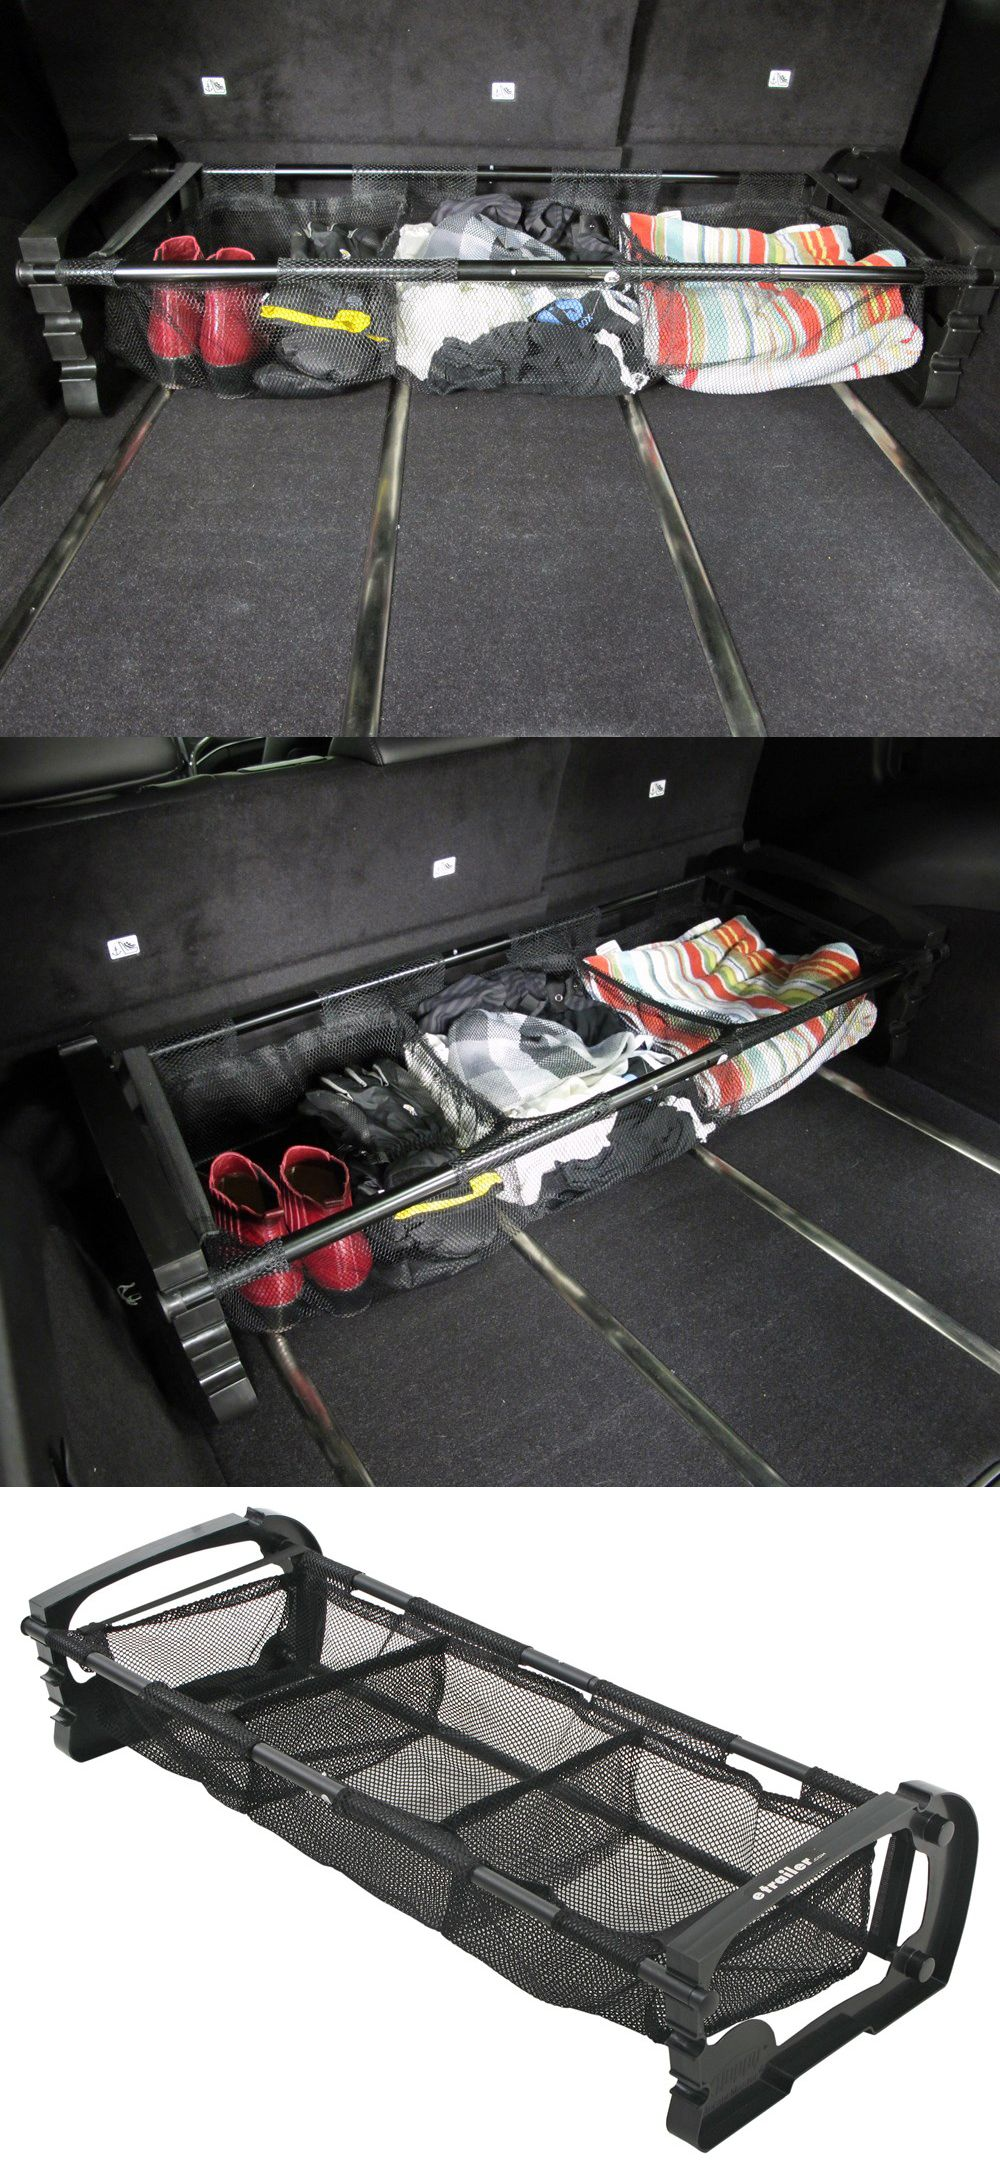 Hopkins collapsible vehicle trunk cargo organizer with mesh bins versatile cargo holder that can be adjusted to fit your trunk and is compatible with the subaru outback wagon car organization is a must while traveling solutioingenieria Choice Image